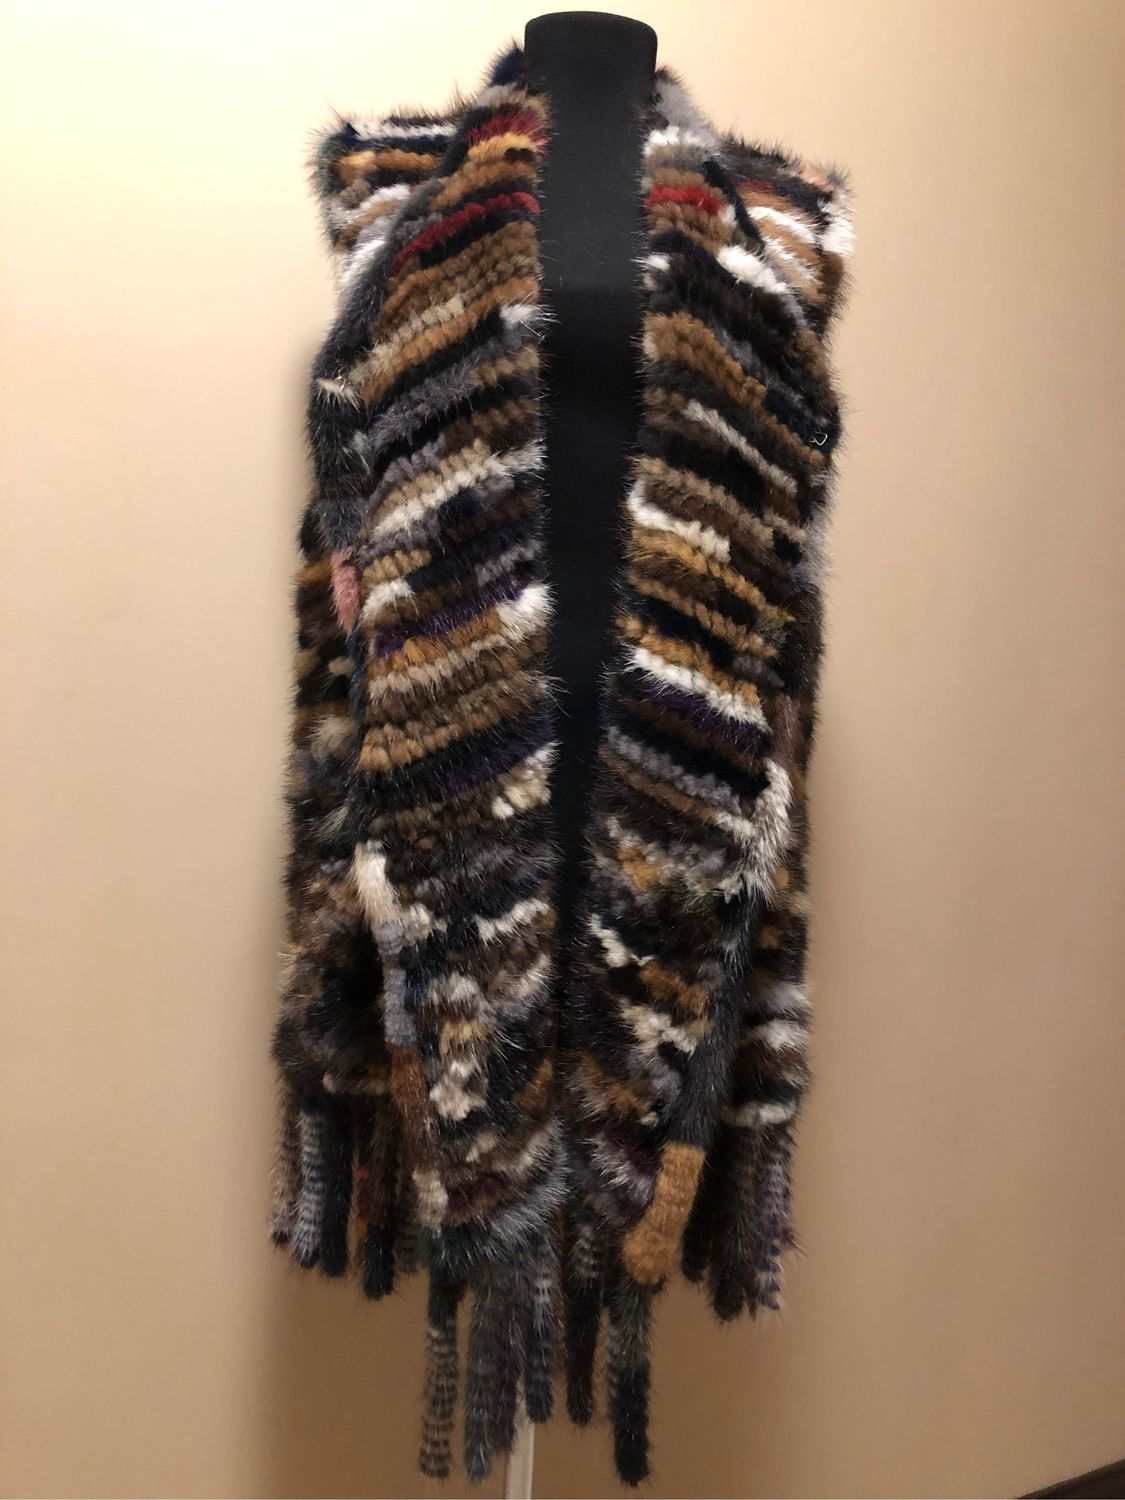 Knitted mink vest ' KENZO', Vests, Moscow,  Фото №1